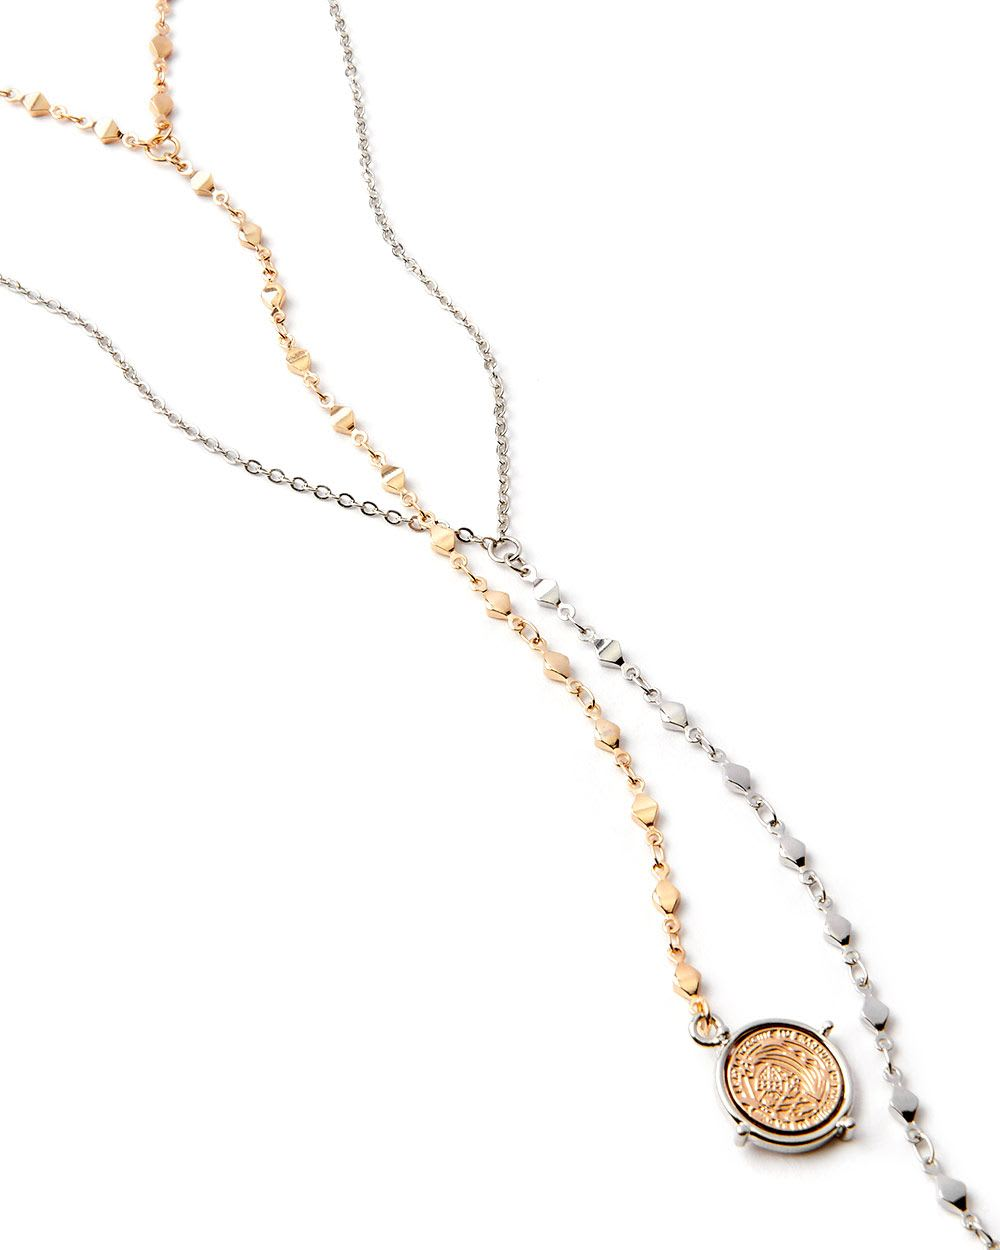 Multi-Row Necklace with Coin Pendant